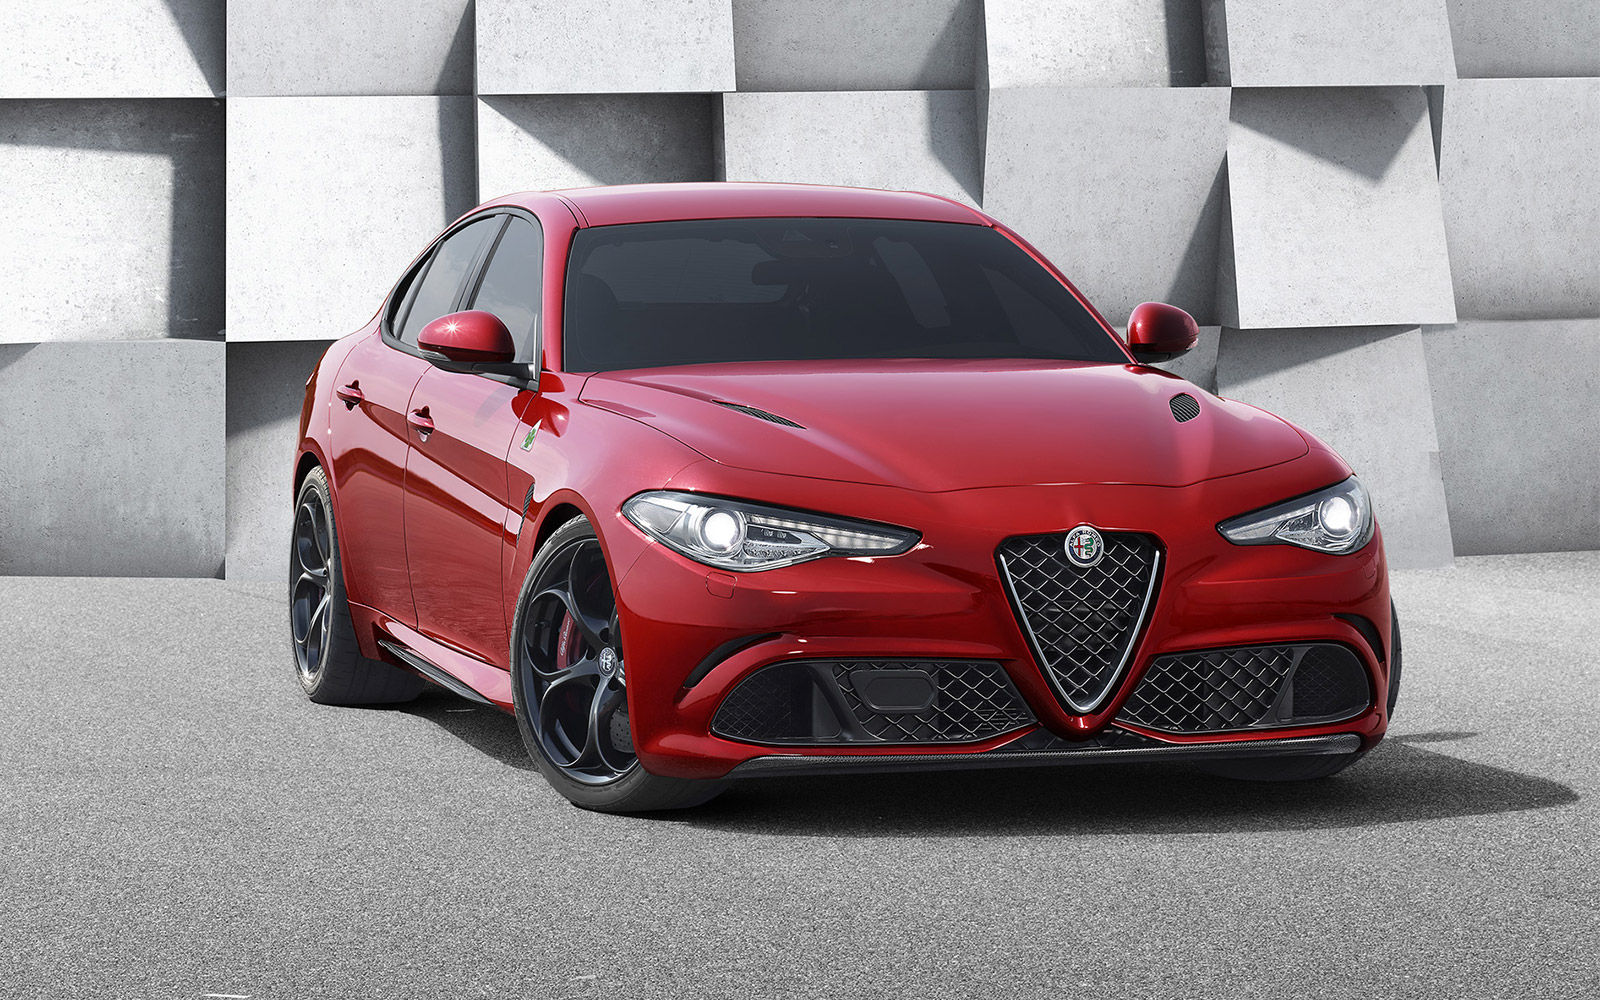 Alfa Romeo Giulia 0 60 >> The Future Of Alfa Romeo Cars In The Usa 0 60 Specs